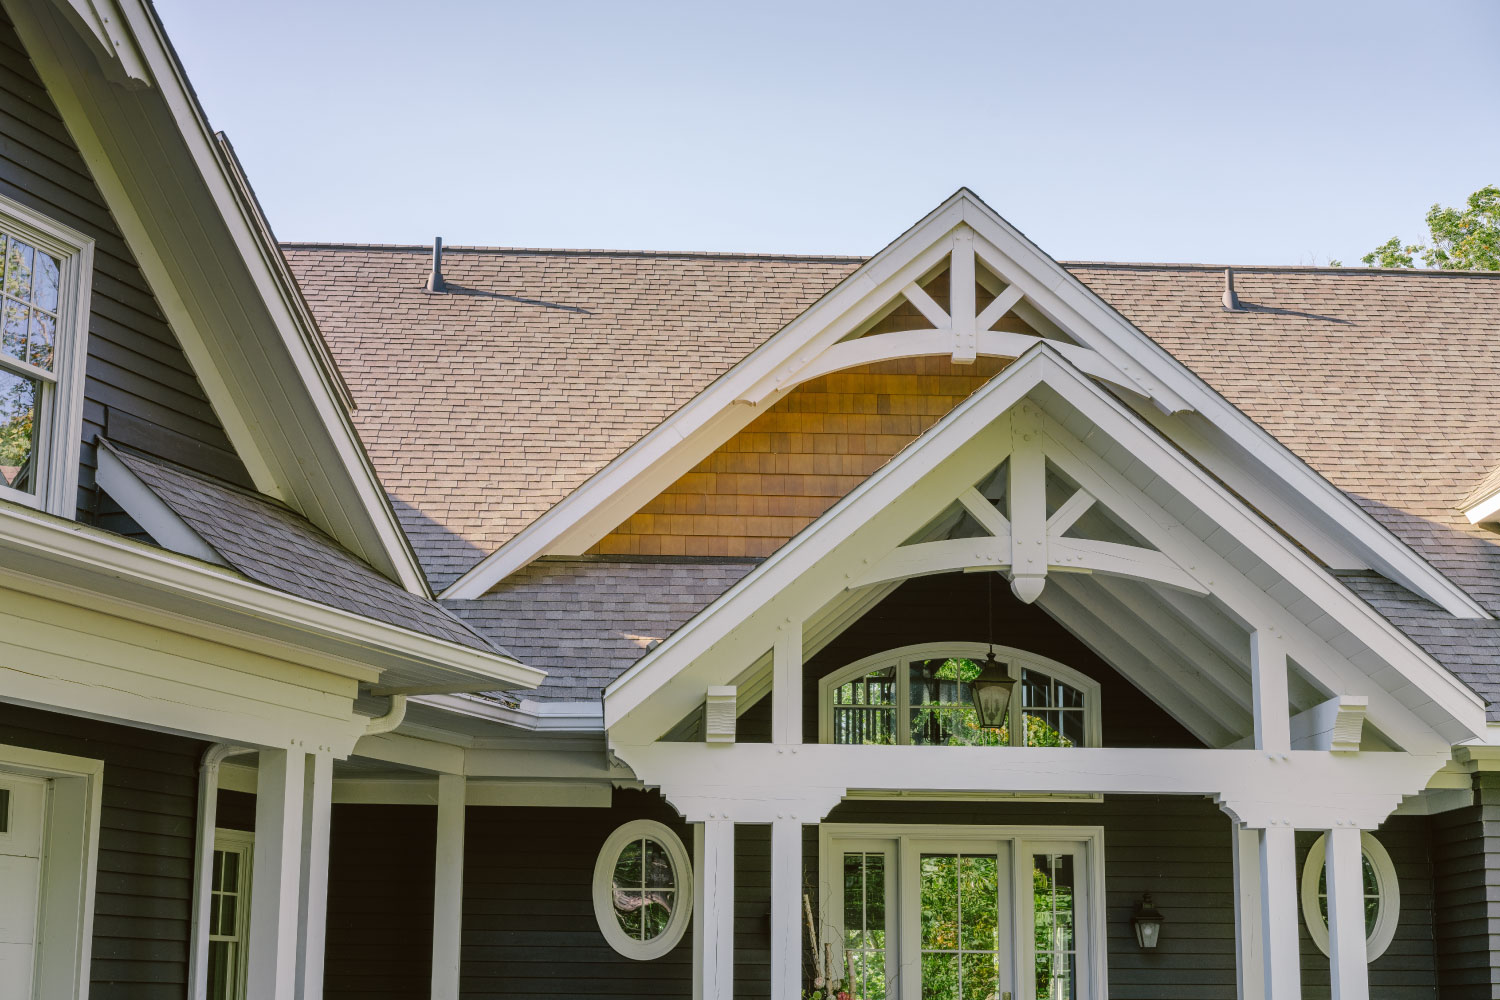 timberthane finished home with dark siding